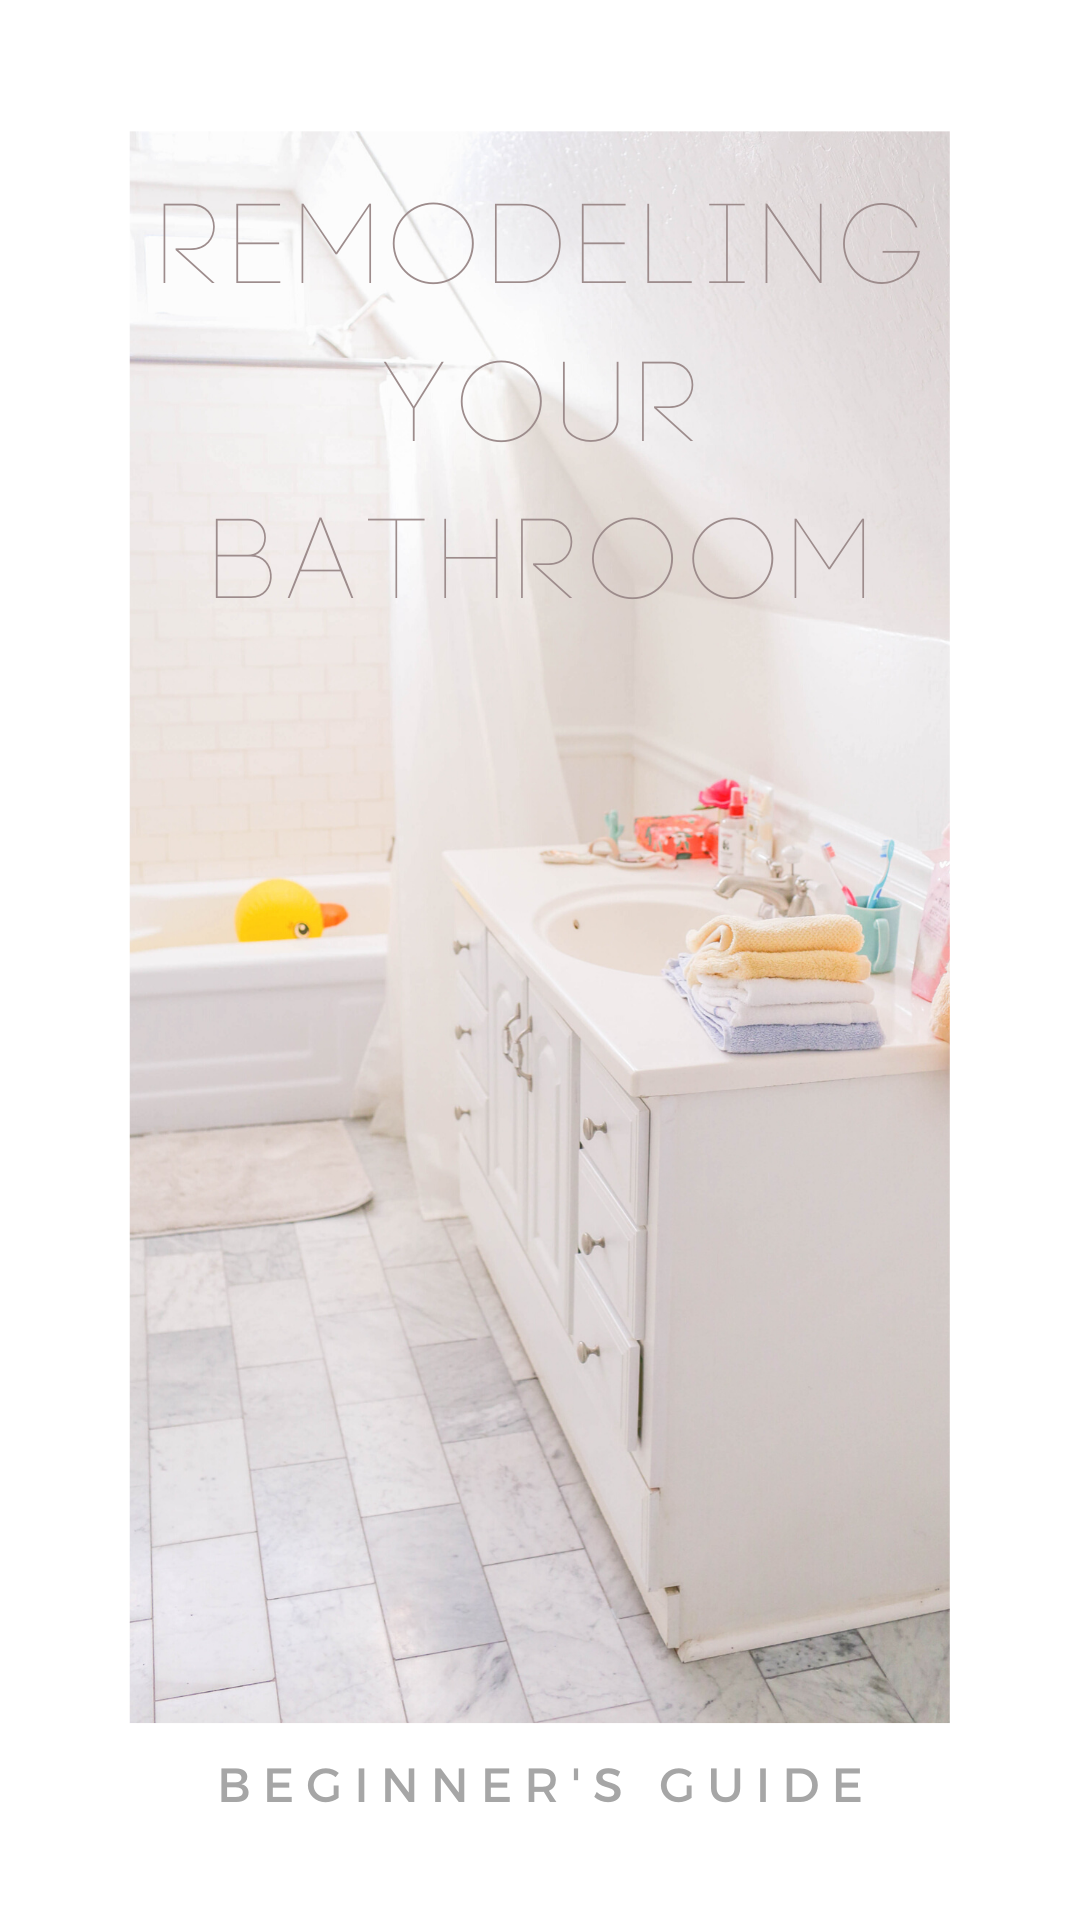 Home And Bath Remodeling In 2020 Manual Guide